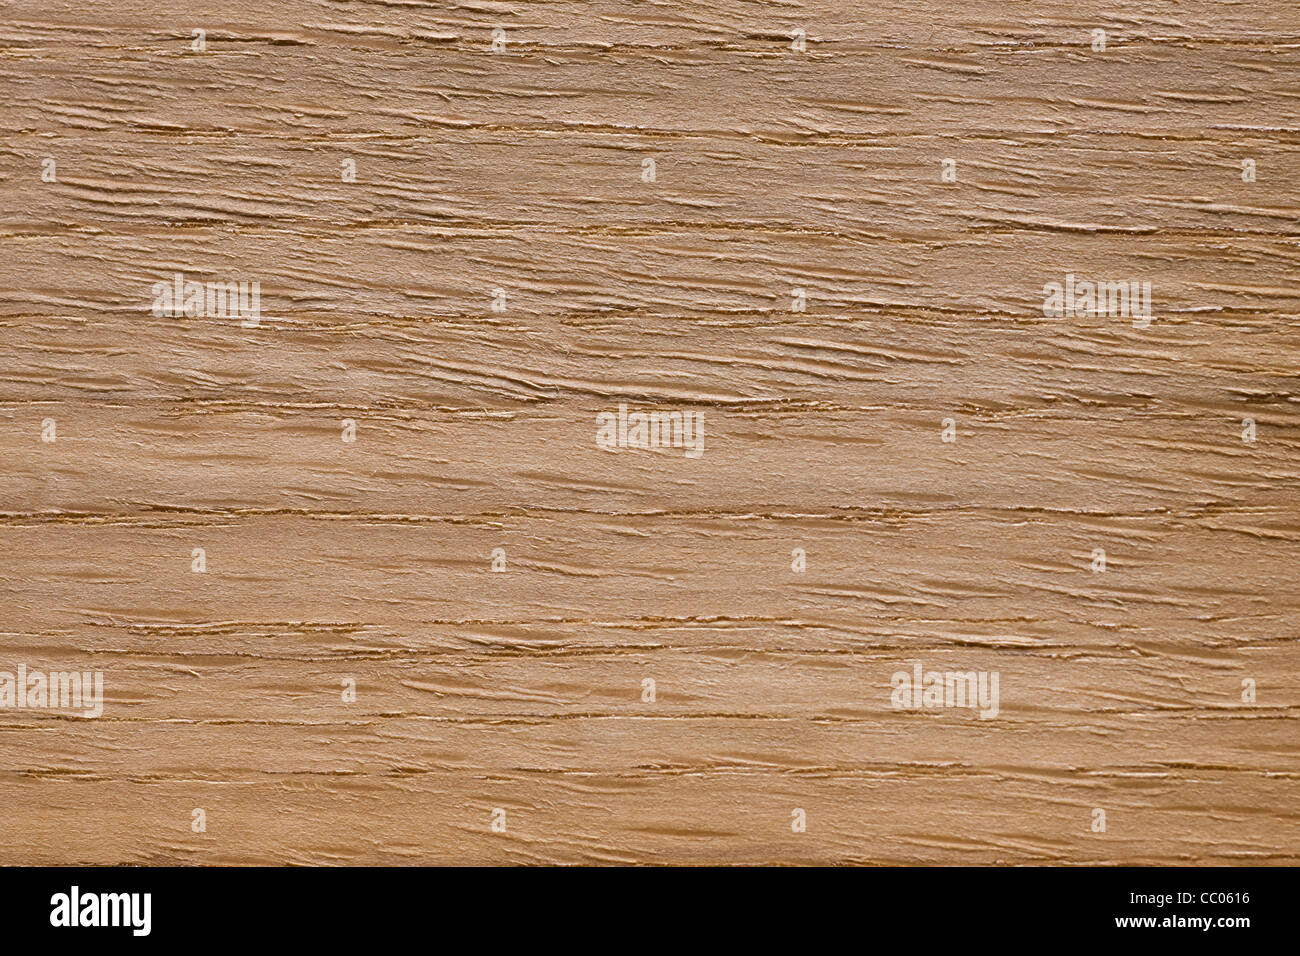 Wood grain of American White oak (Quercus alba), North America - Stock Image